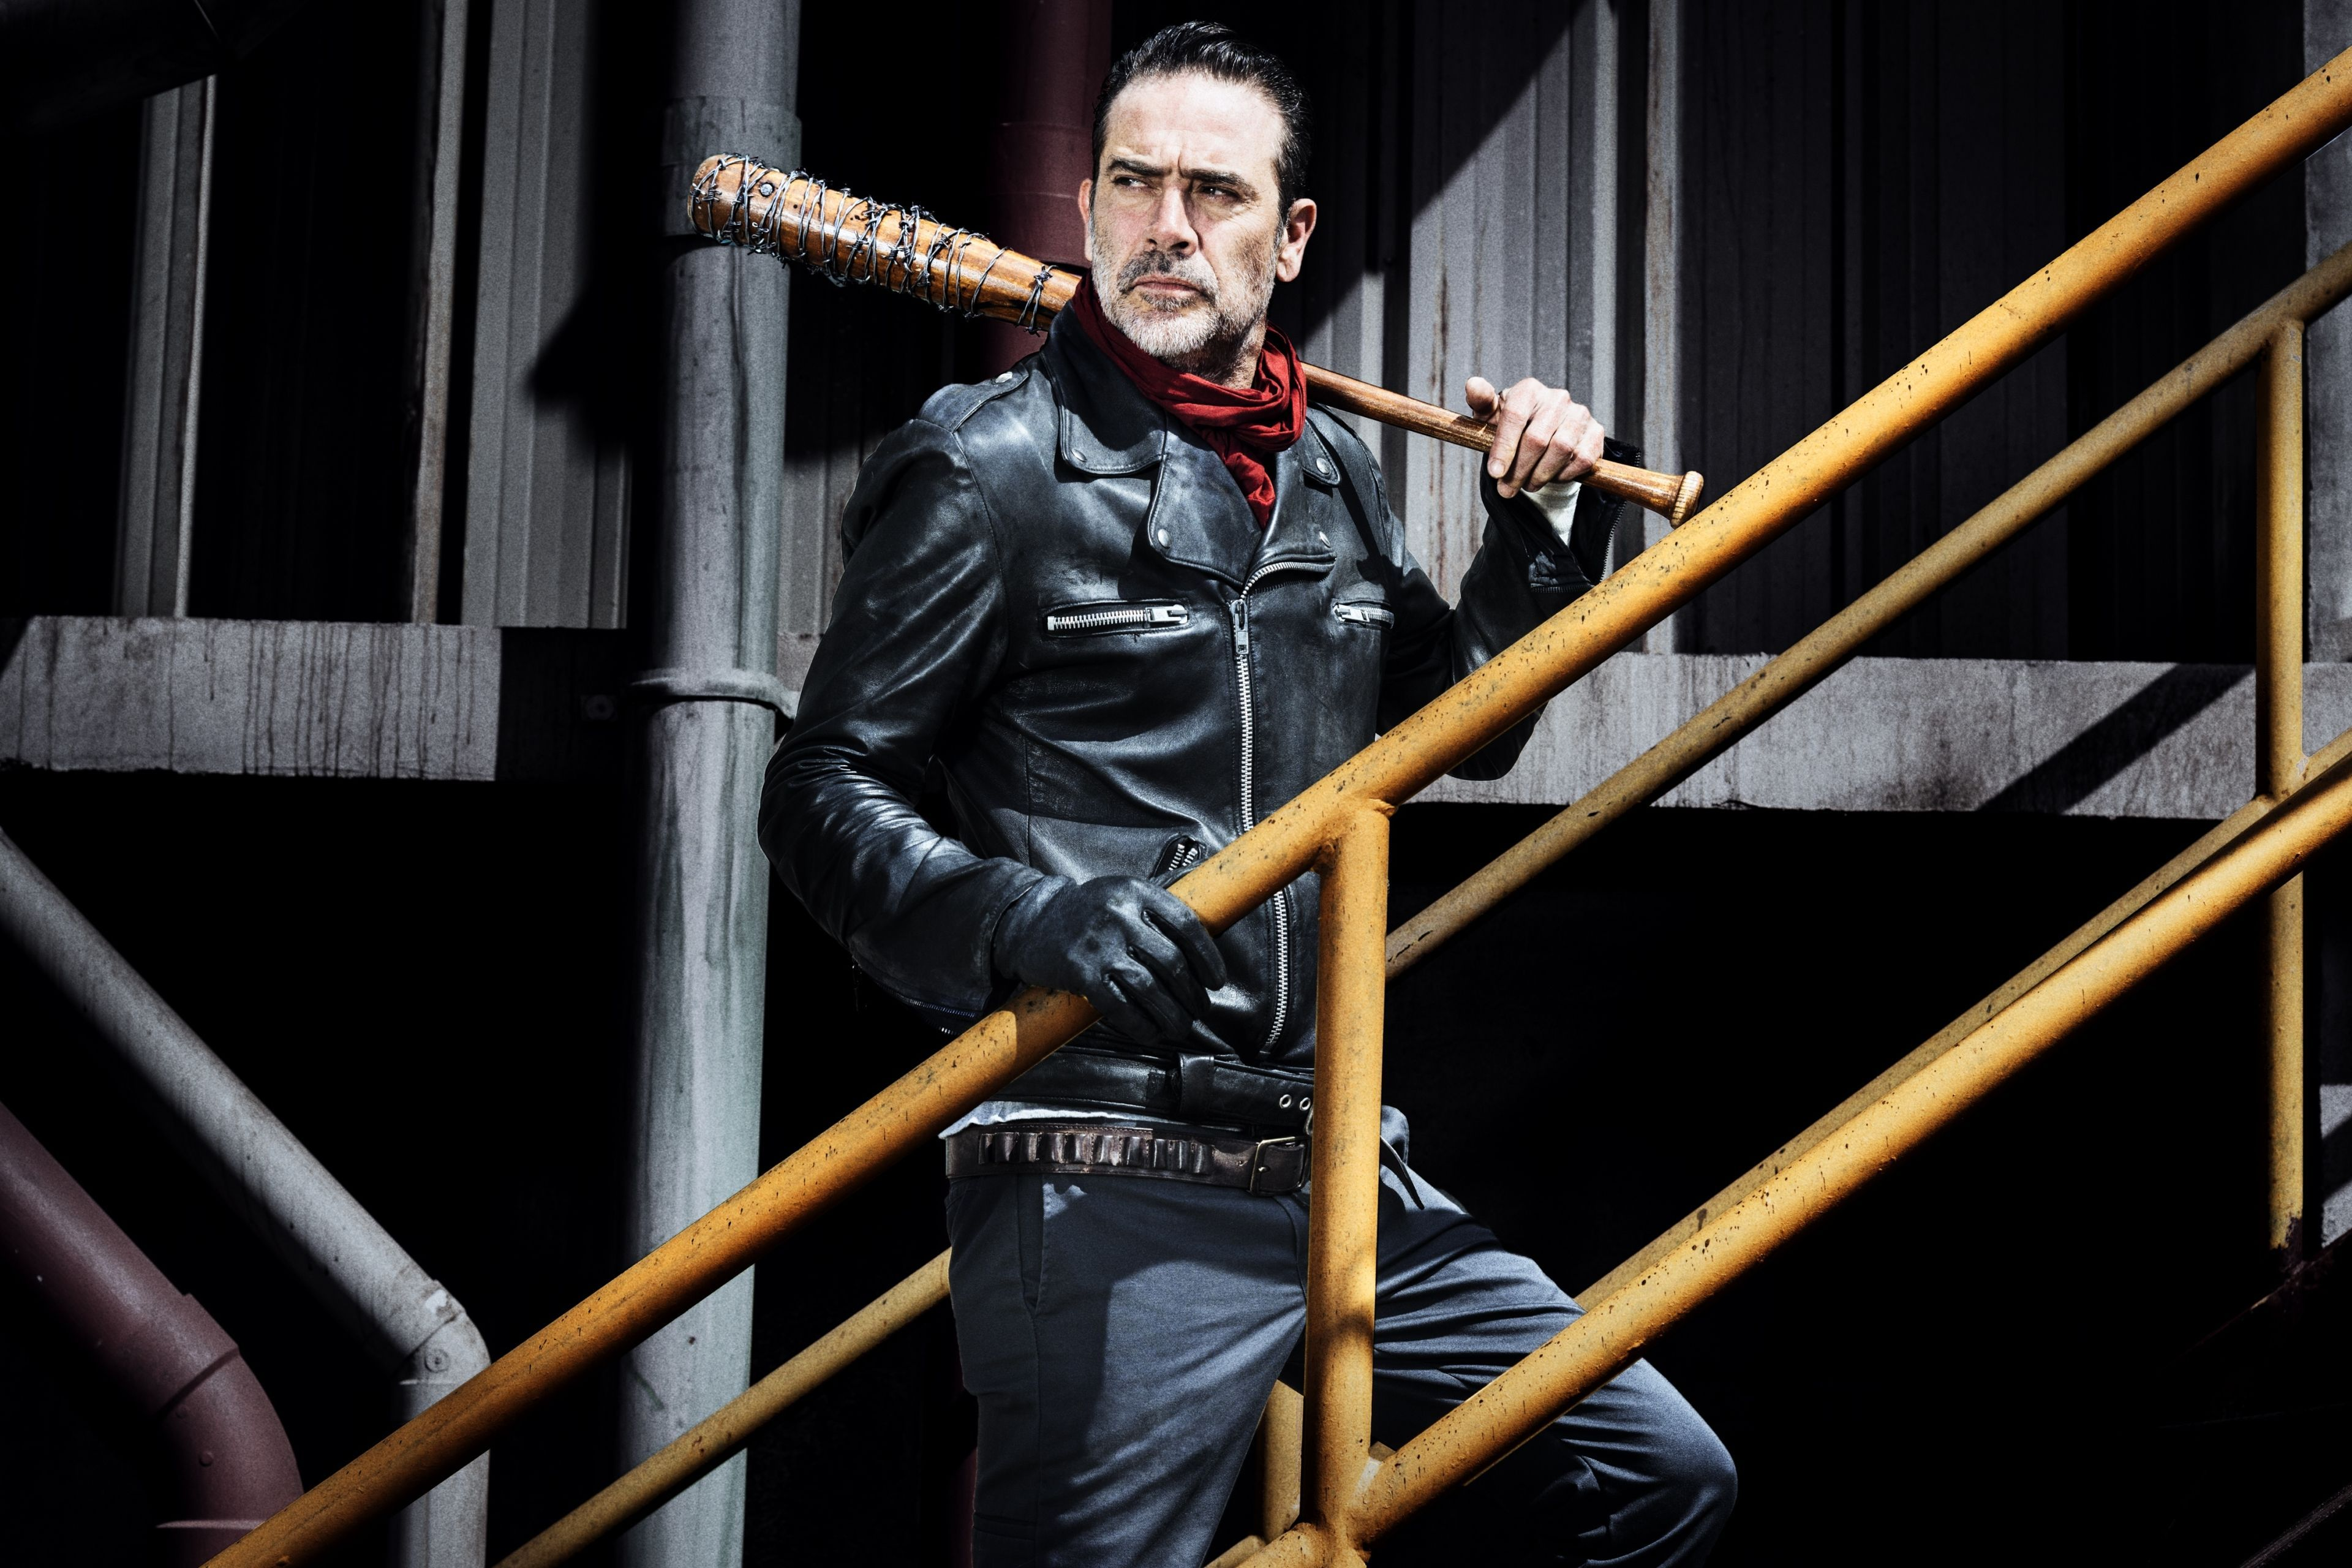 Negan The Walking Dead 4k Uhd 3 2 3840x2560 Wallpaper Uhd Walking Dead Season 8 Walking Dead Costumes Walking Dead Season